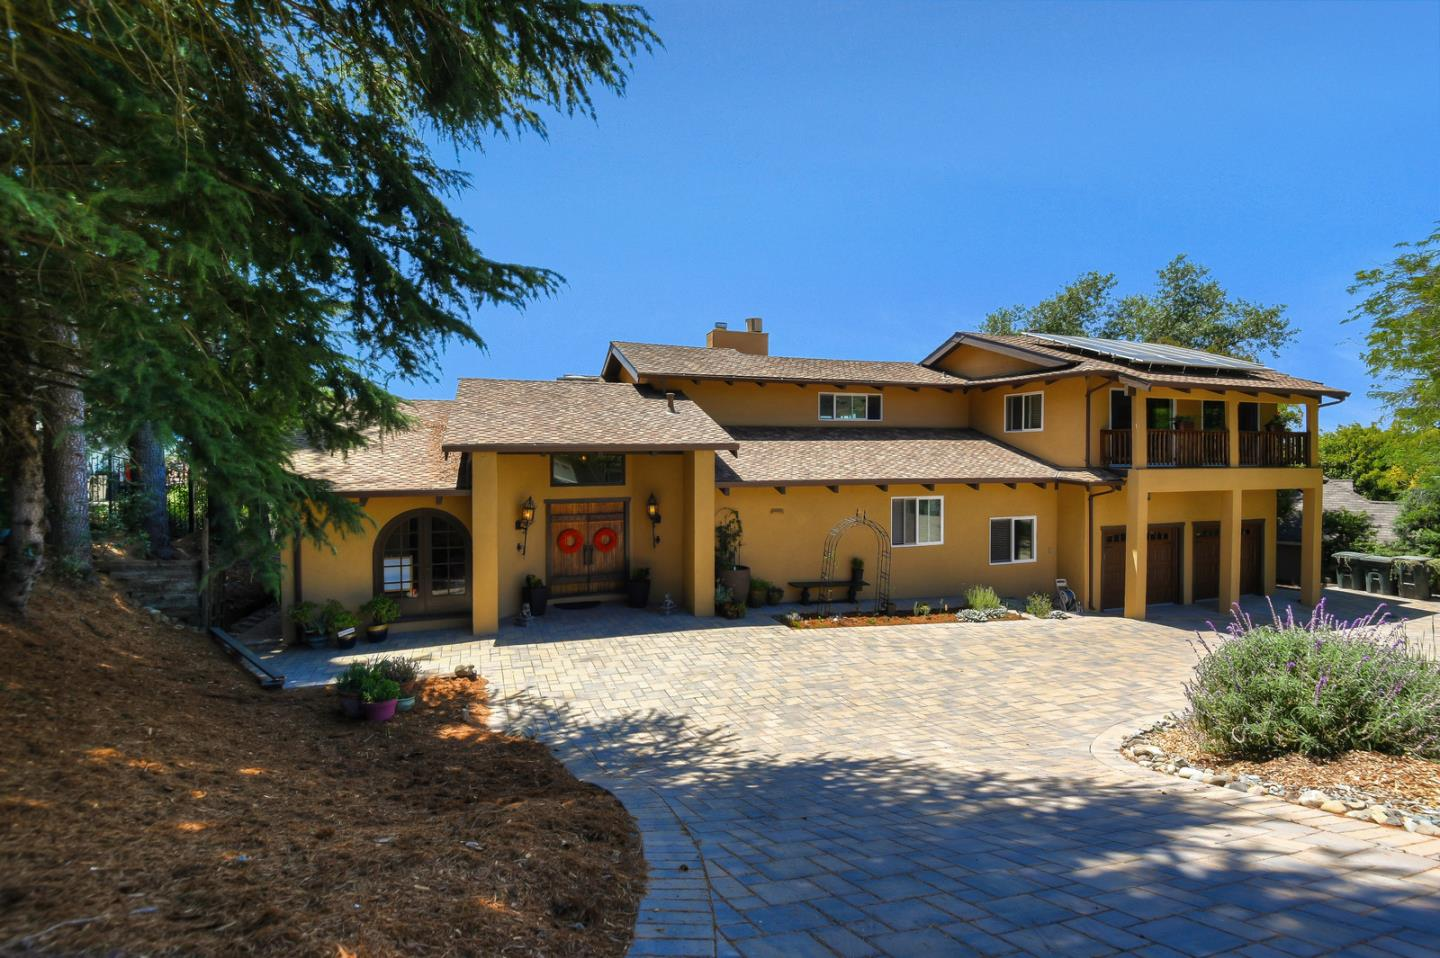 16360 Jackson Oaks DR, Morgan Hill in Santa Clara County, CA 95037 Home for Sale